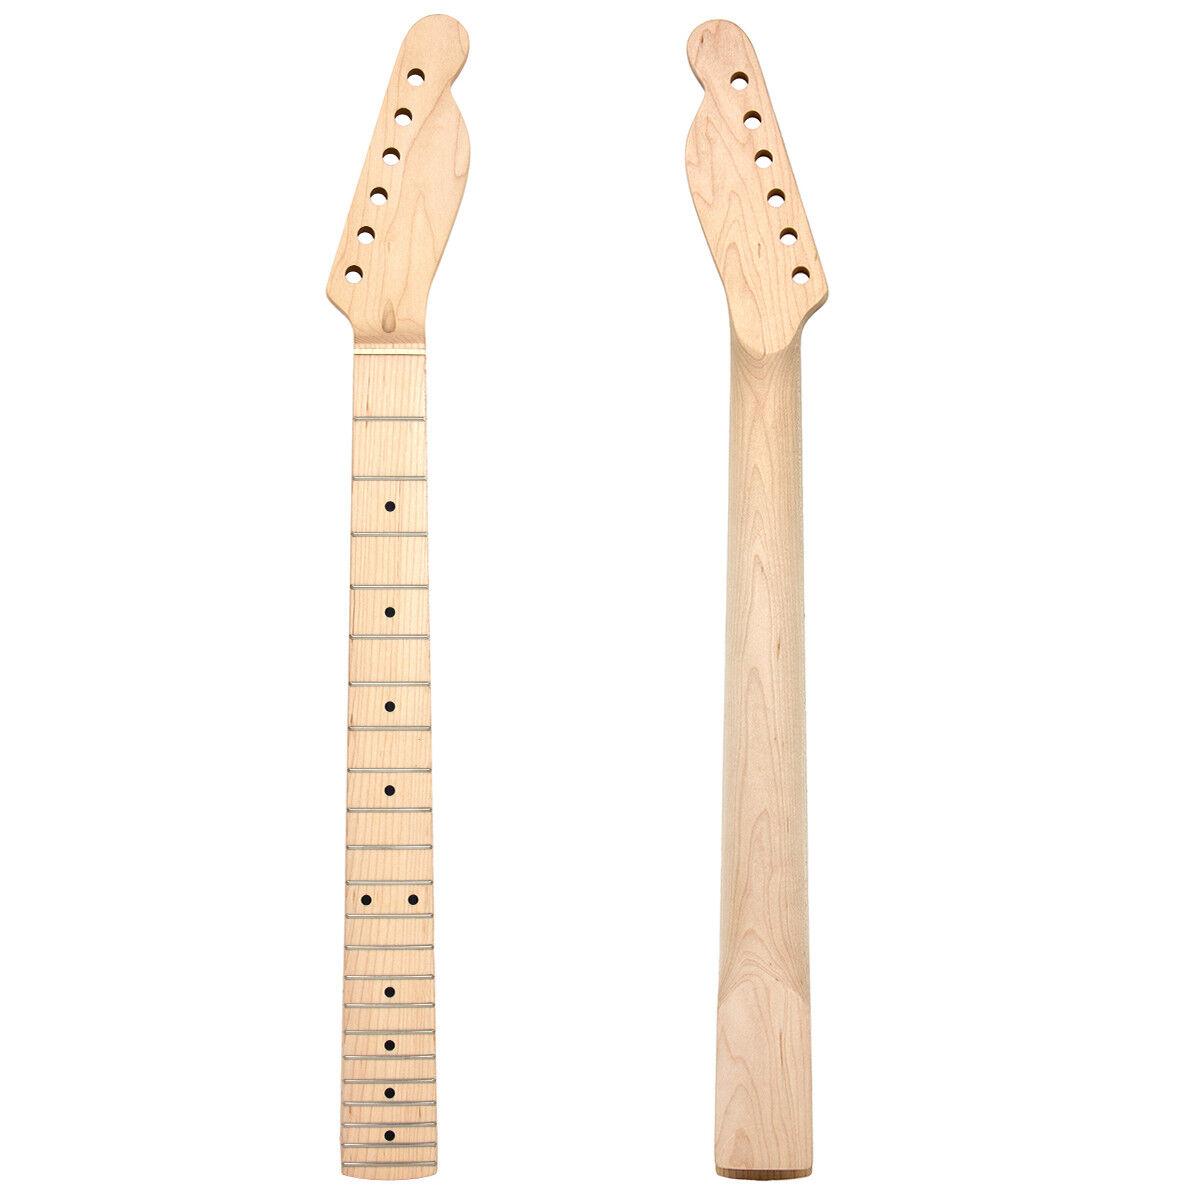 electric guitar neck for tl replacement parts maple wood 22 fret w nut 42mm ebay. Black Bedroom Furniture Sets. Home Design Ideas